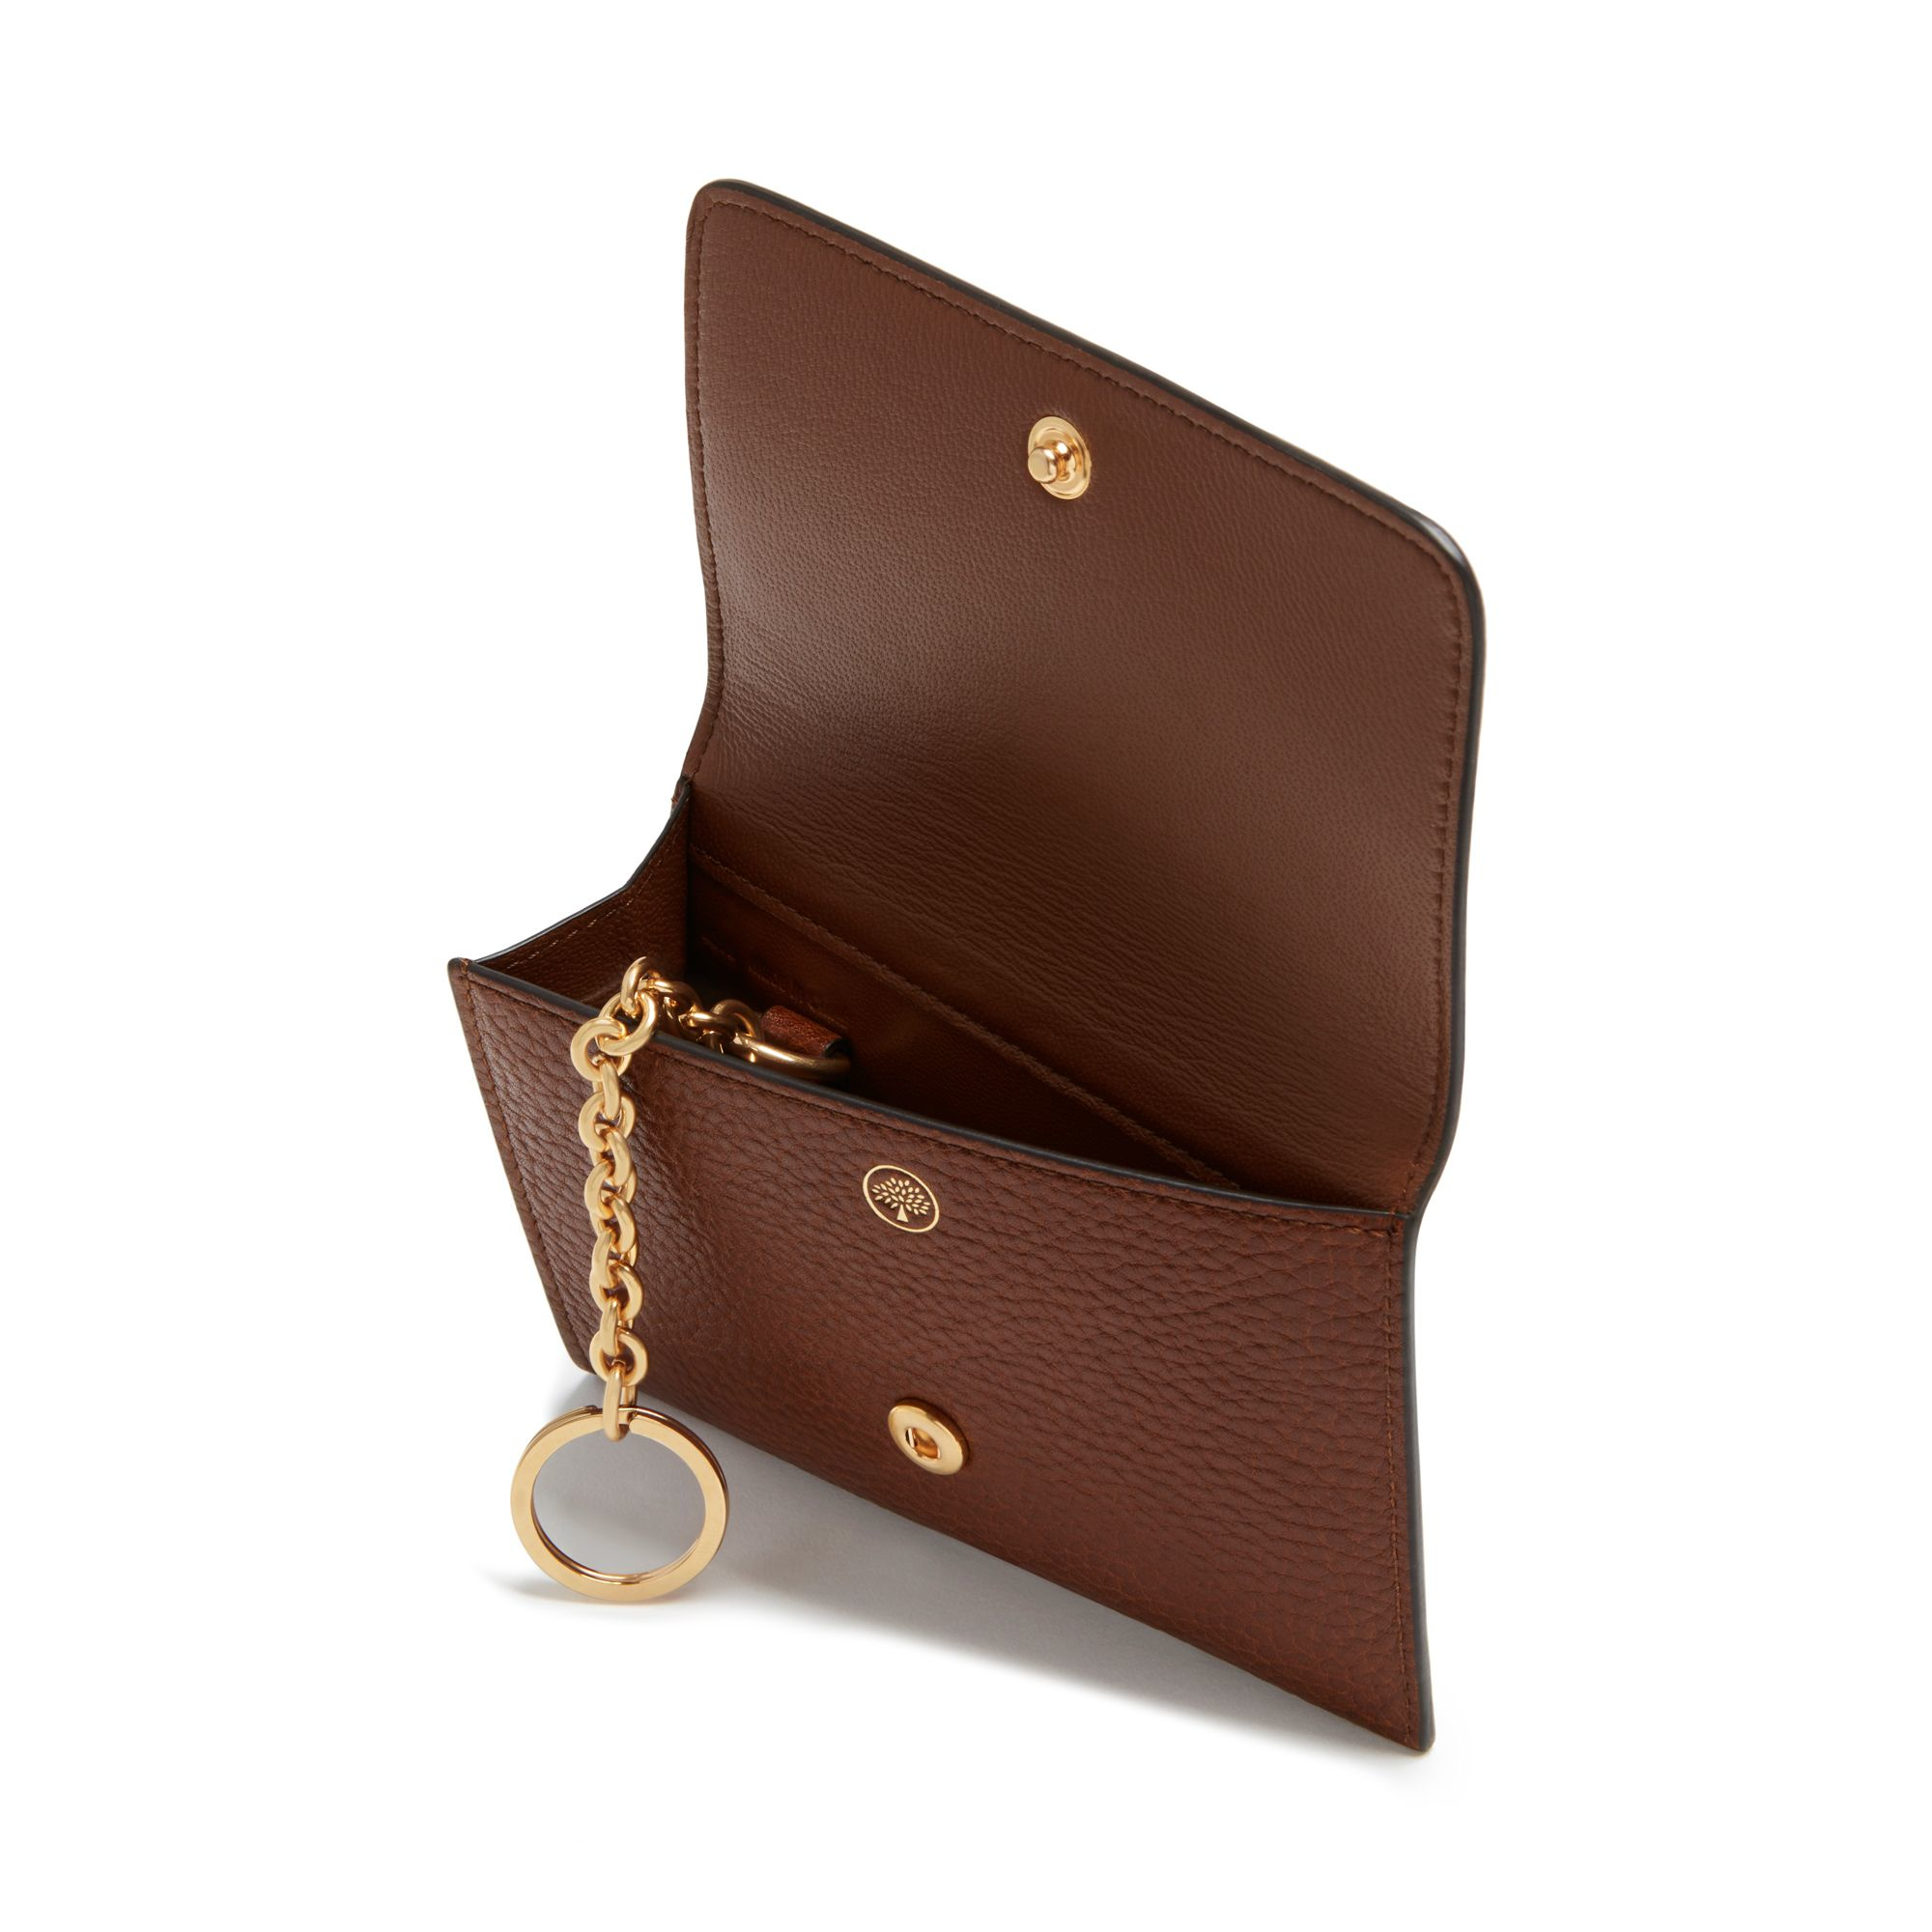 f5778508a7 Lyst - Mulberry Continental Leather Key Coin Pouch in Brown